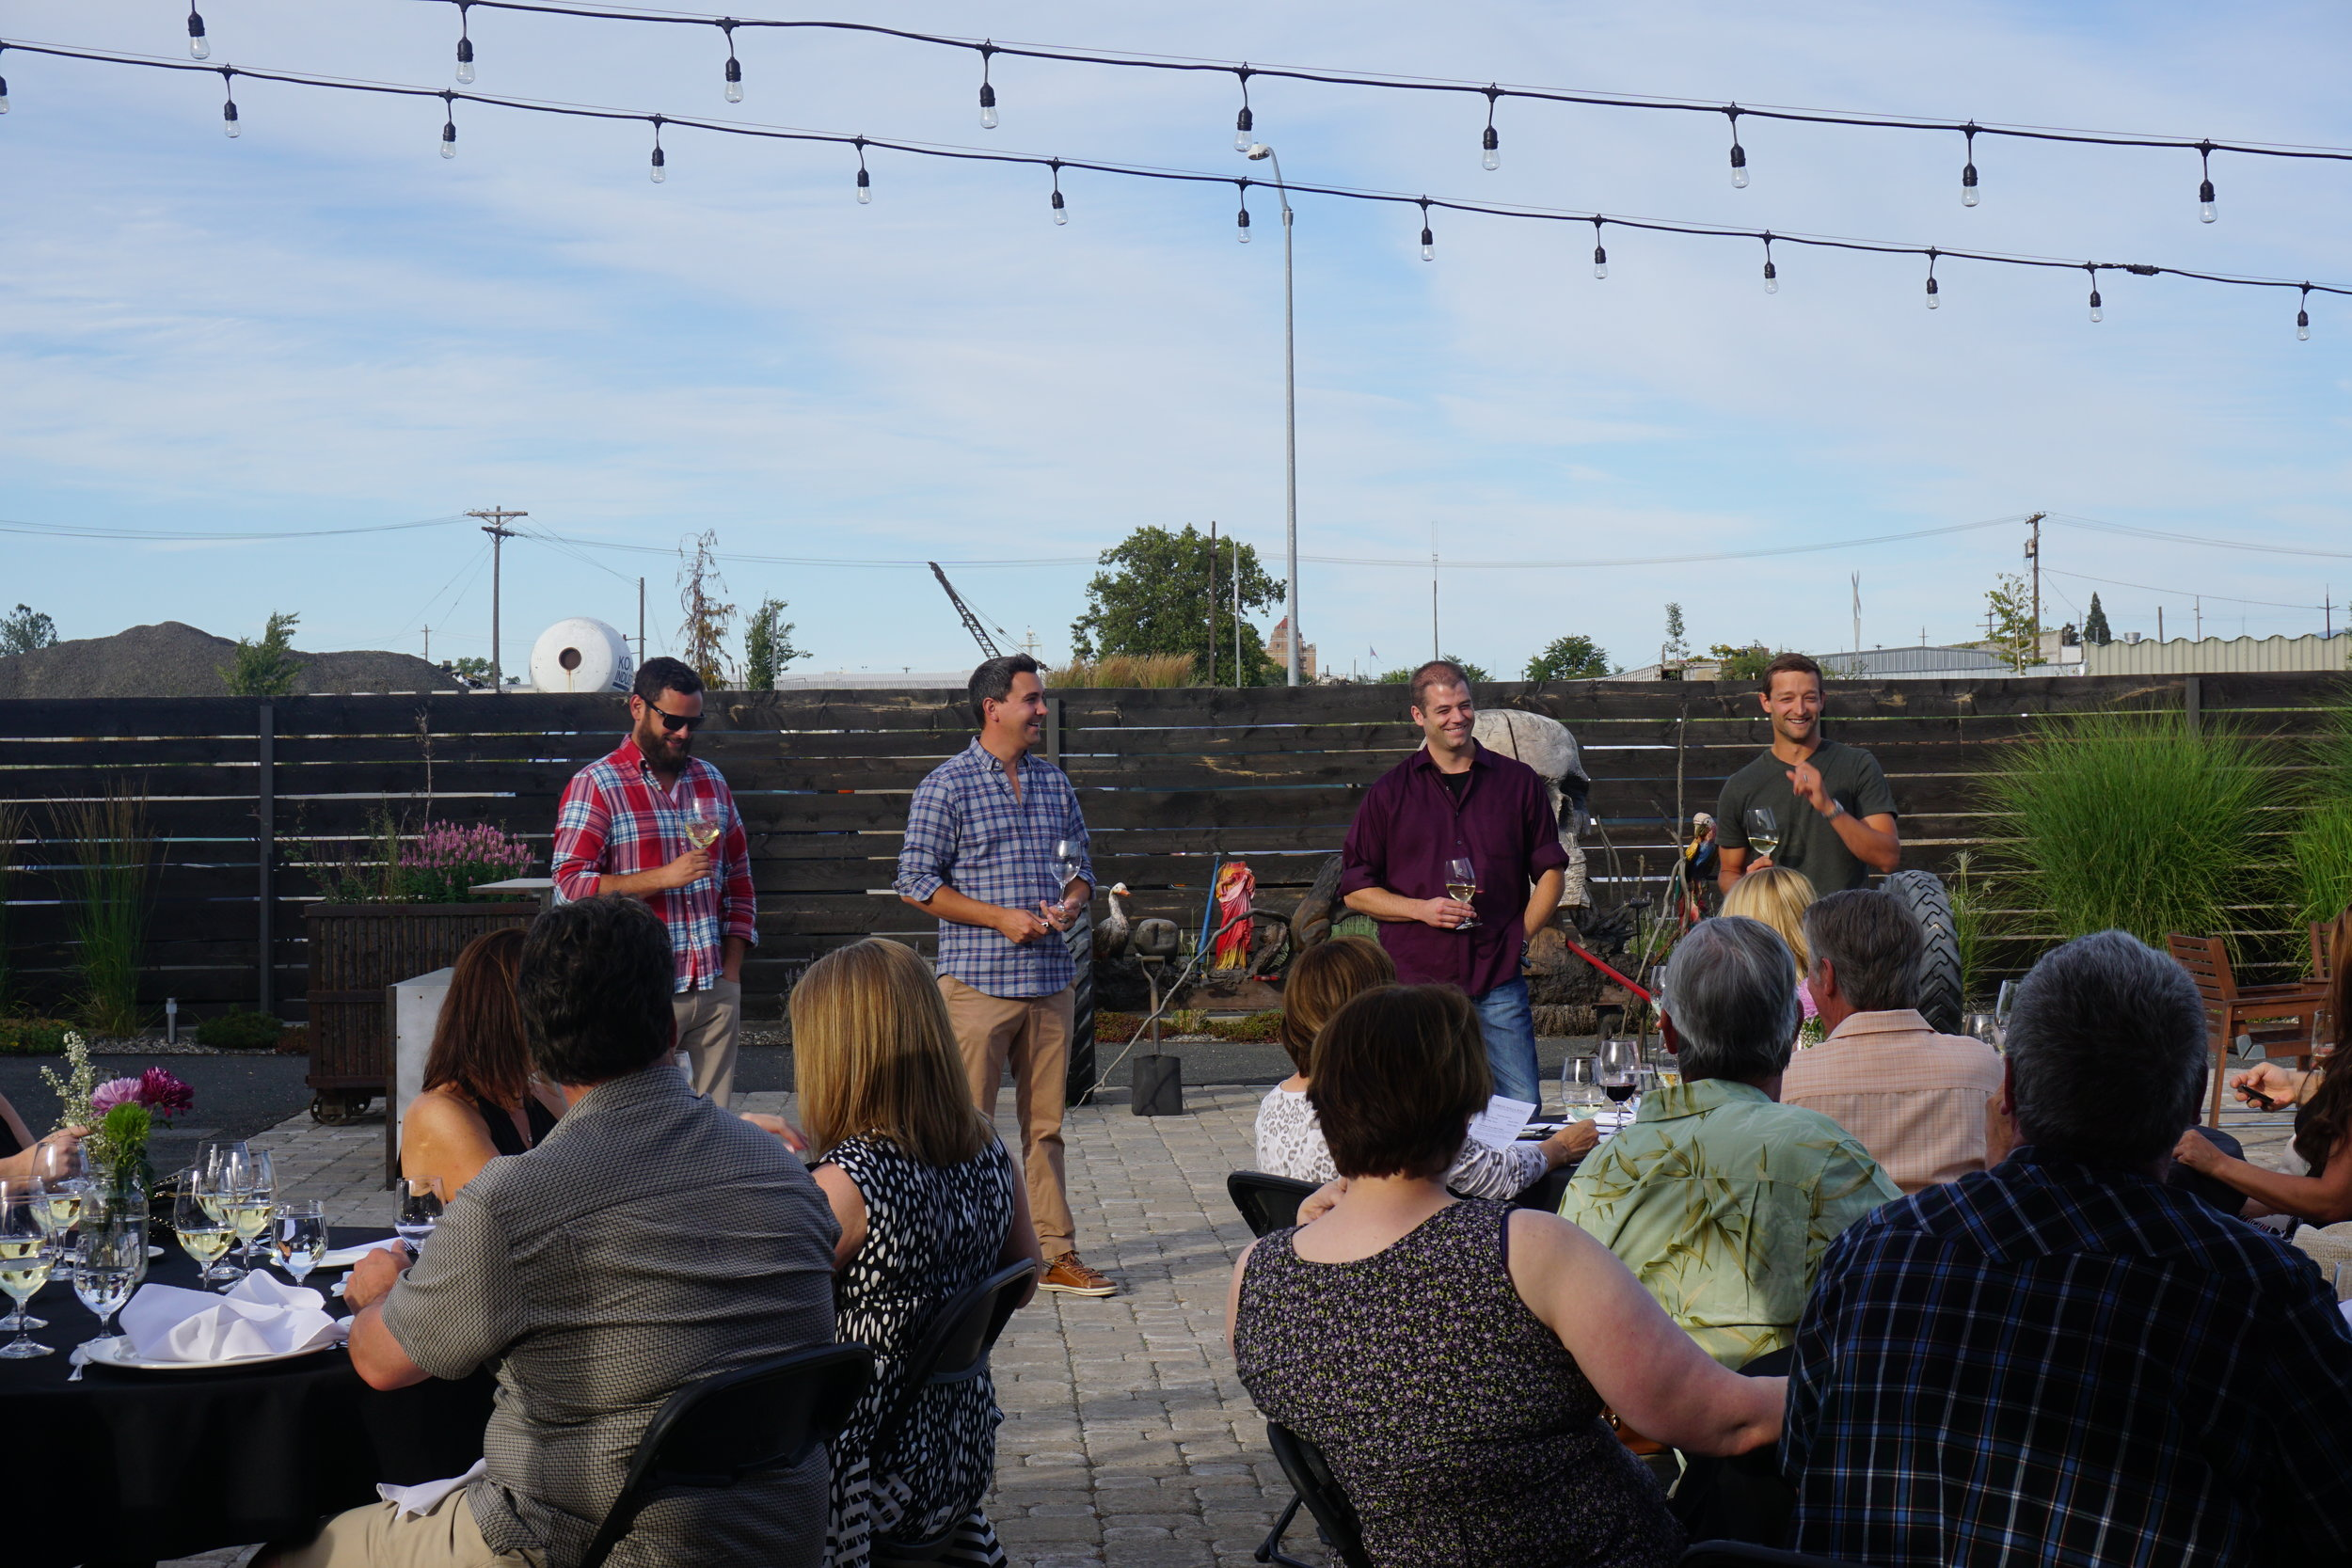 Winemakers Greg Matiko, Justin Basel, Cameron Kontos and Josh McDaniels played off each other jovially at the introduction of each course during June's Young Guns Wine Dinner in Walla Walla. Viki Eierdam